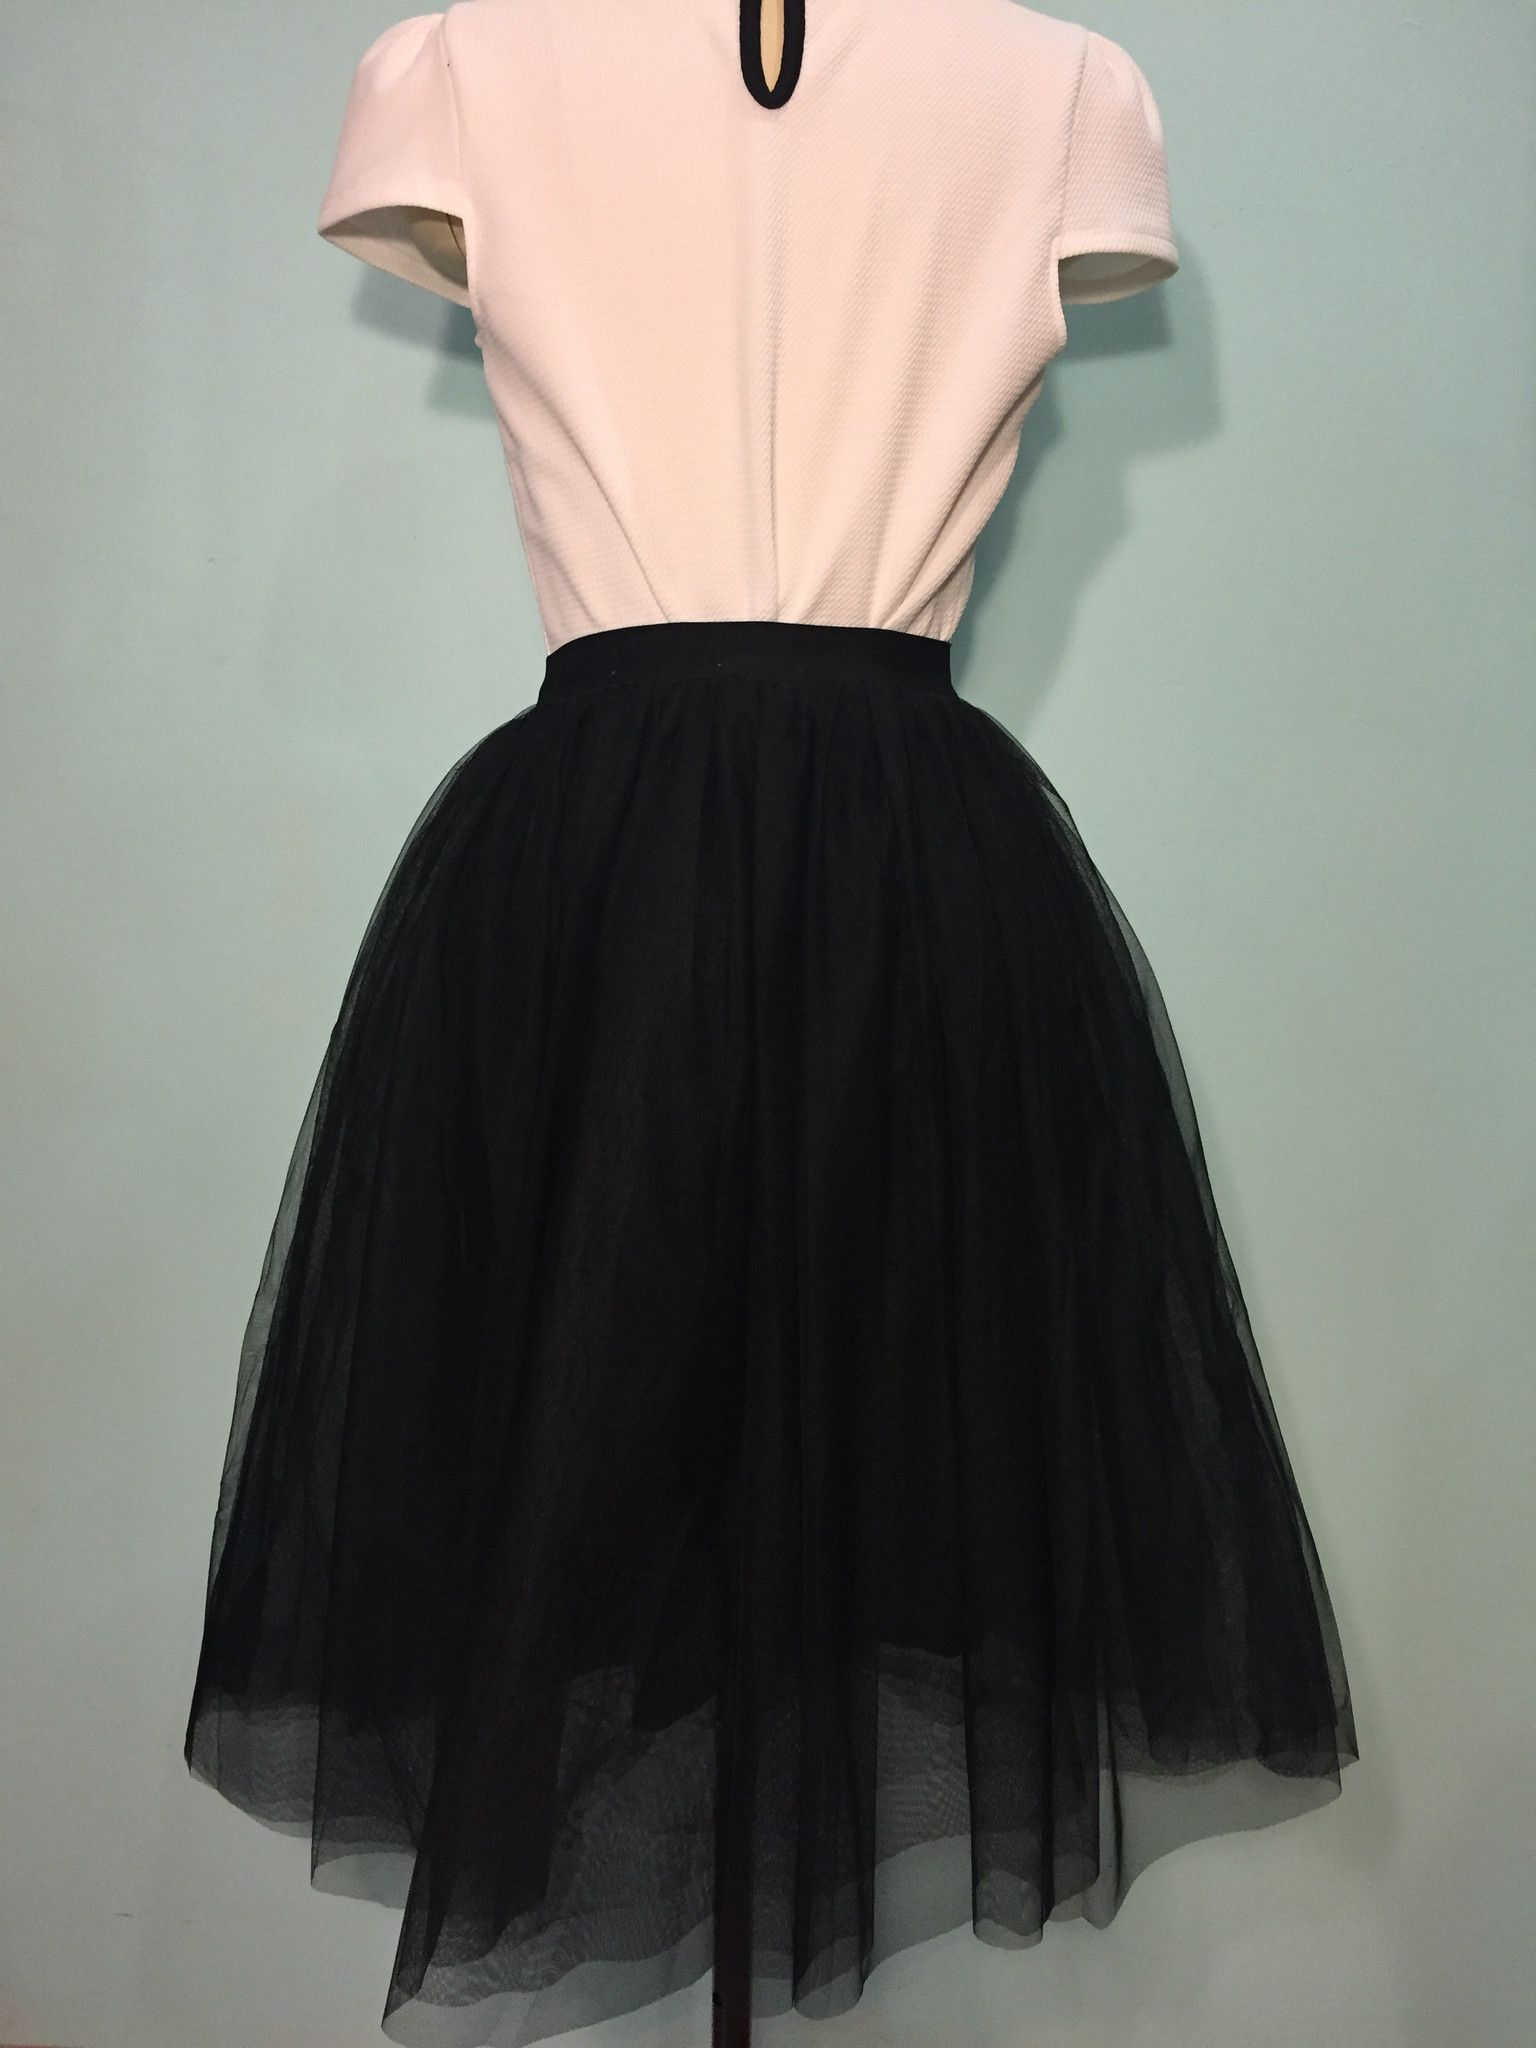 Tulle tulle tulle so perfect for dressy times and we love wearing